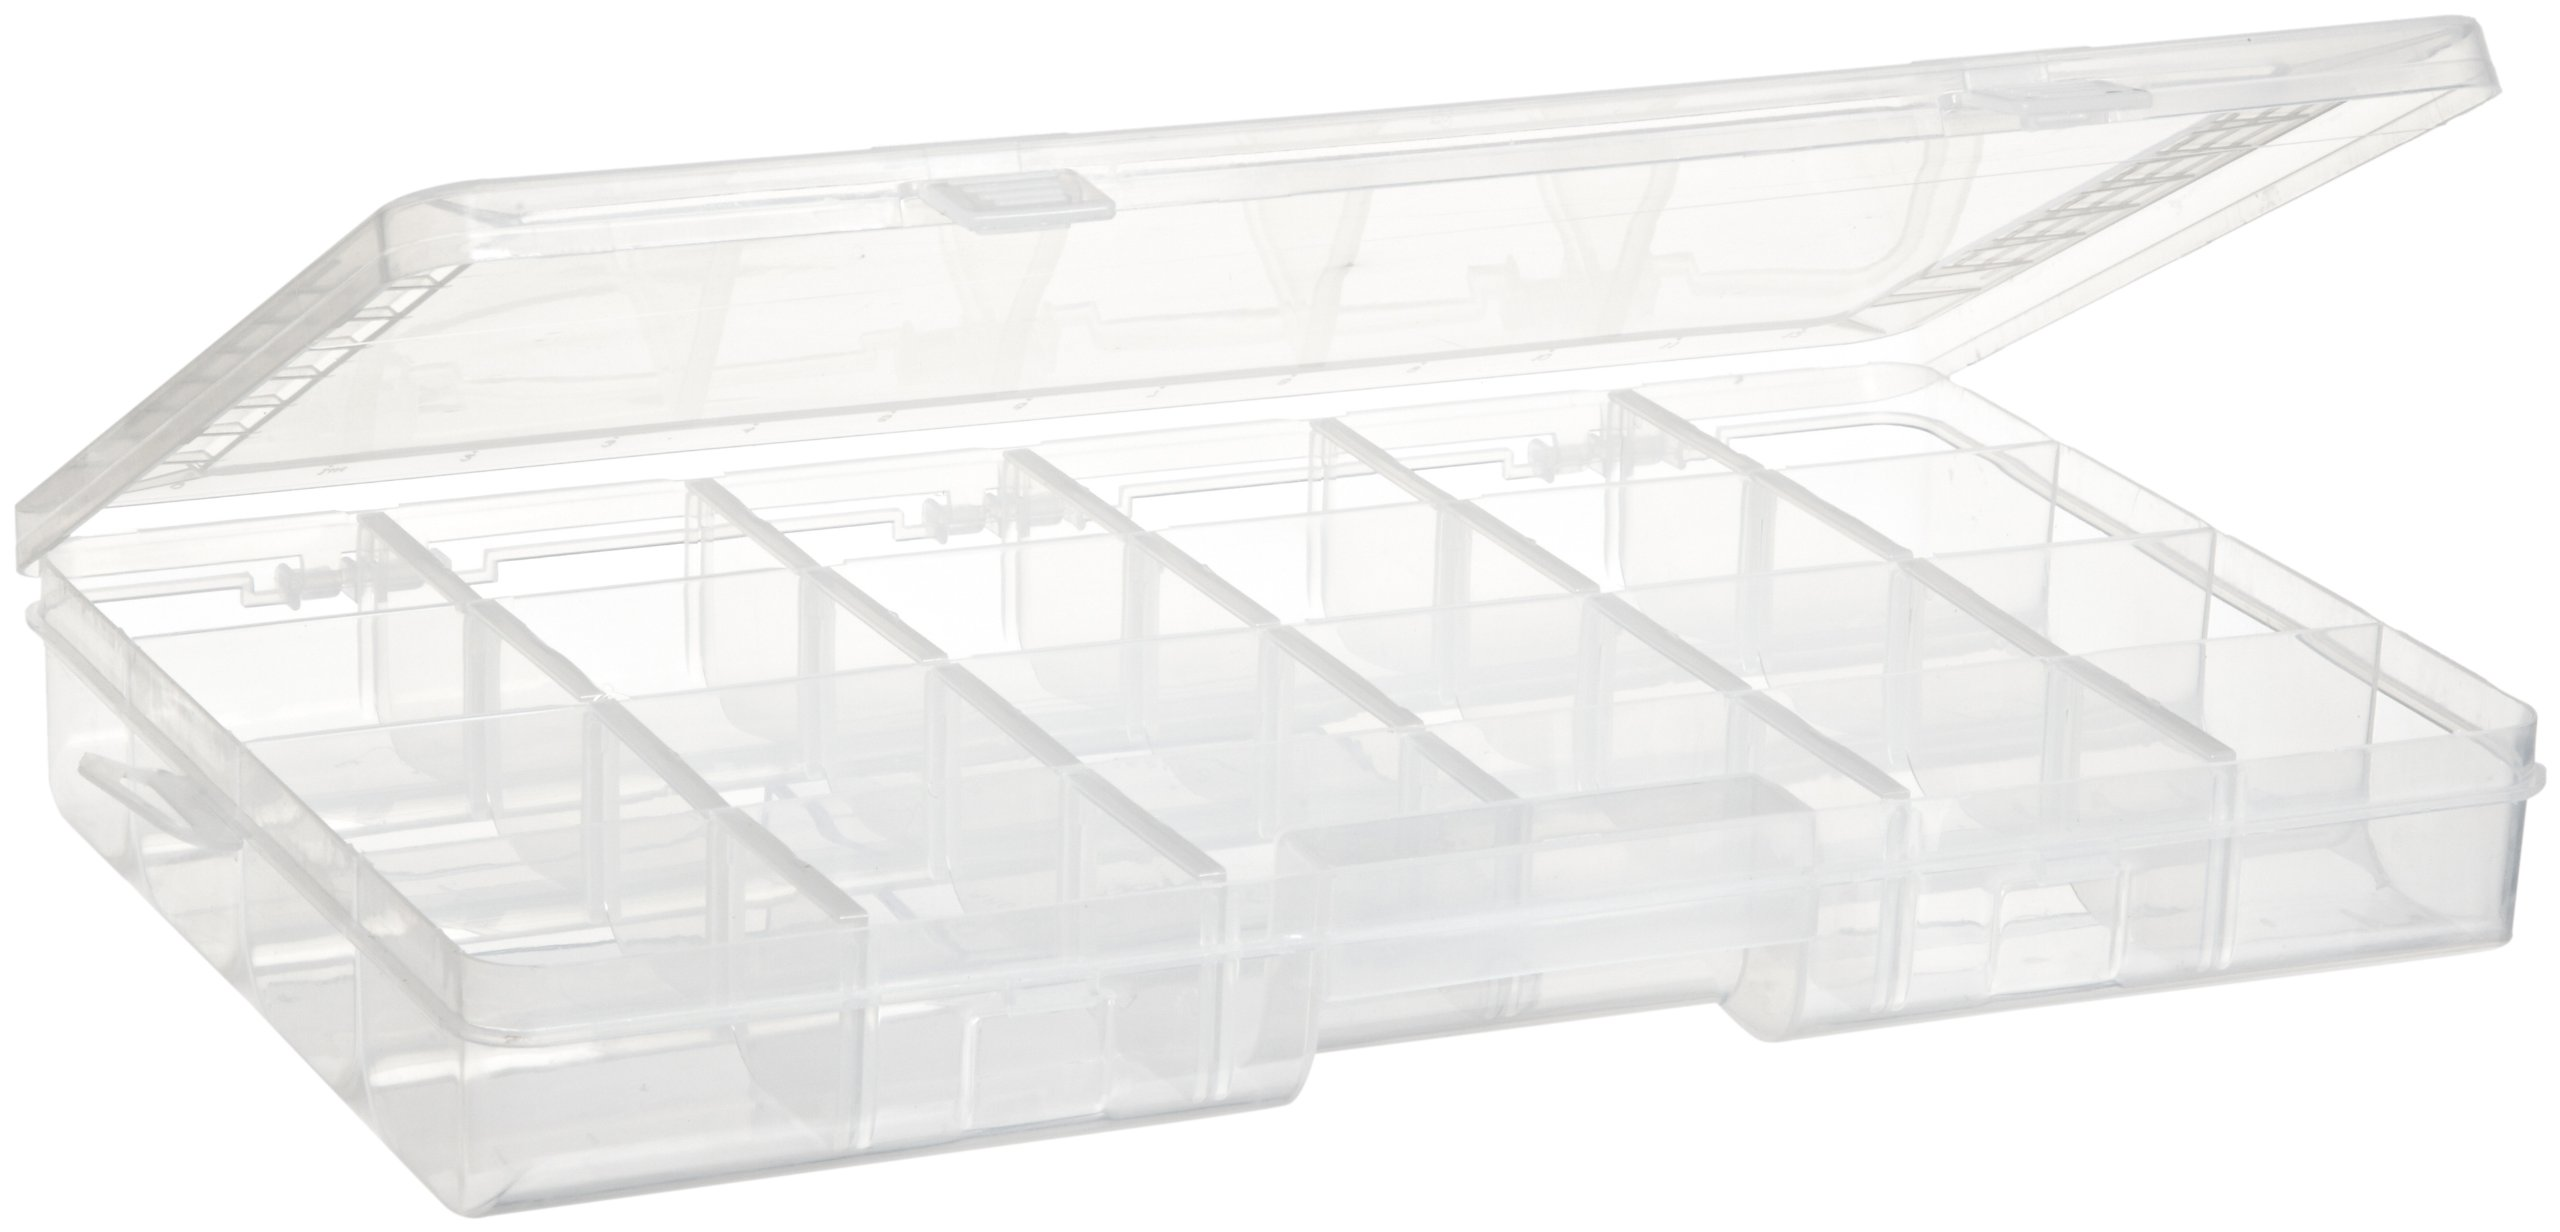 Morris Products 53456 Plastic Tray, 14.1'' x 9.1'' x 1.9'' Size